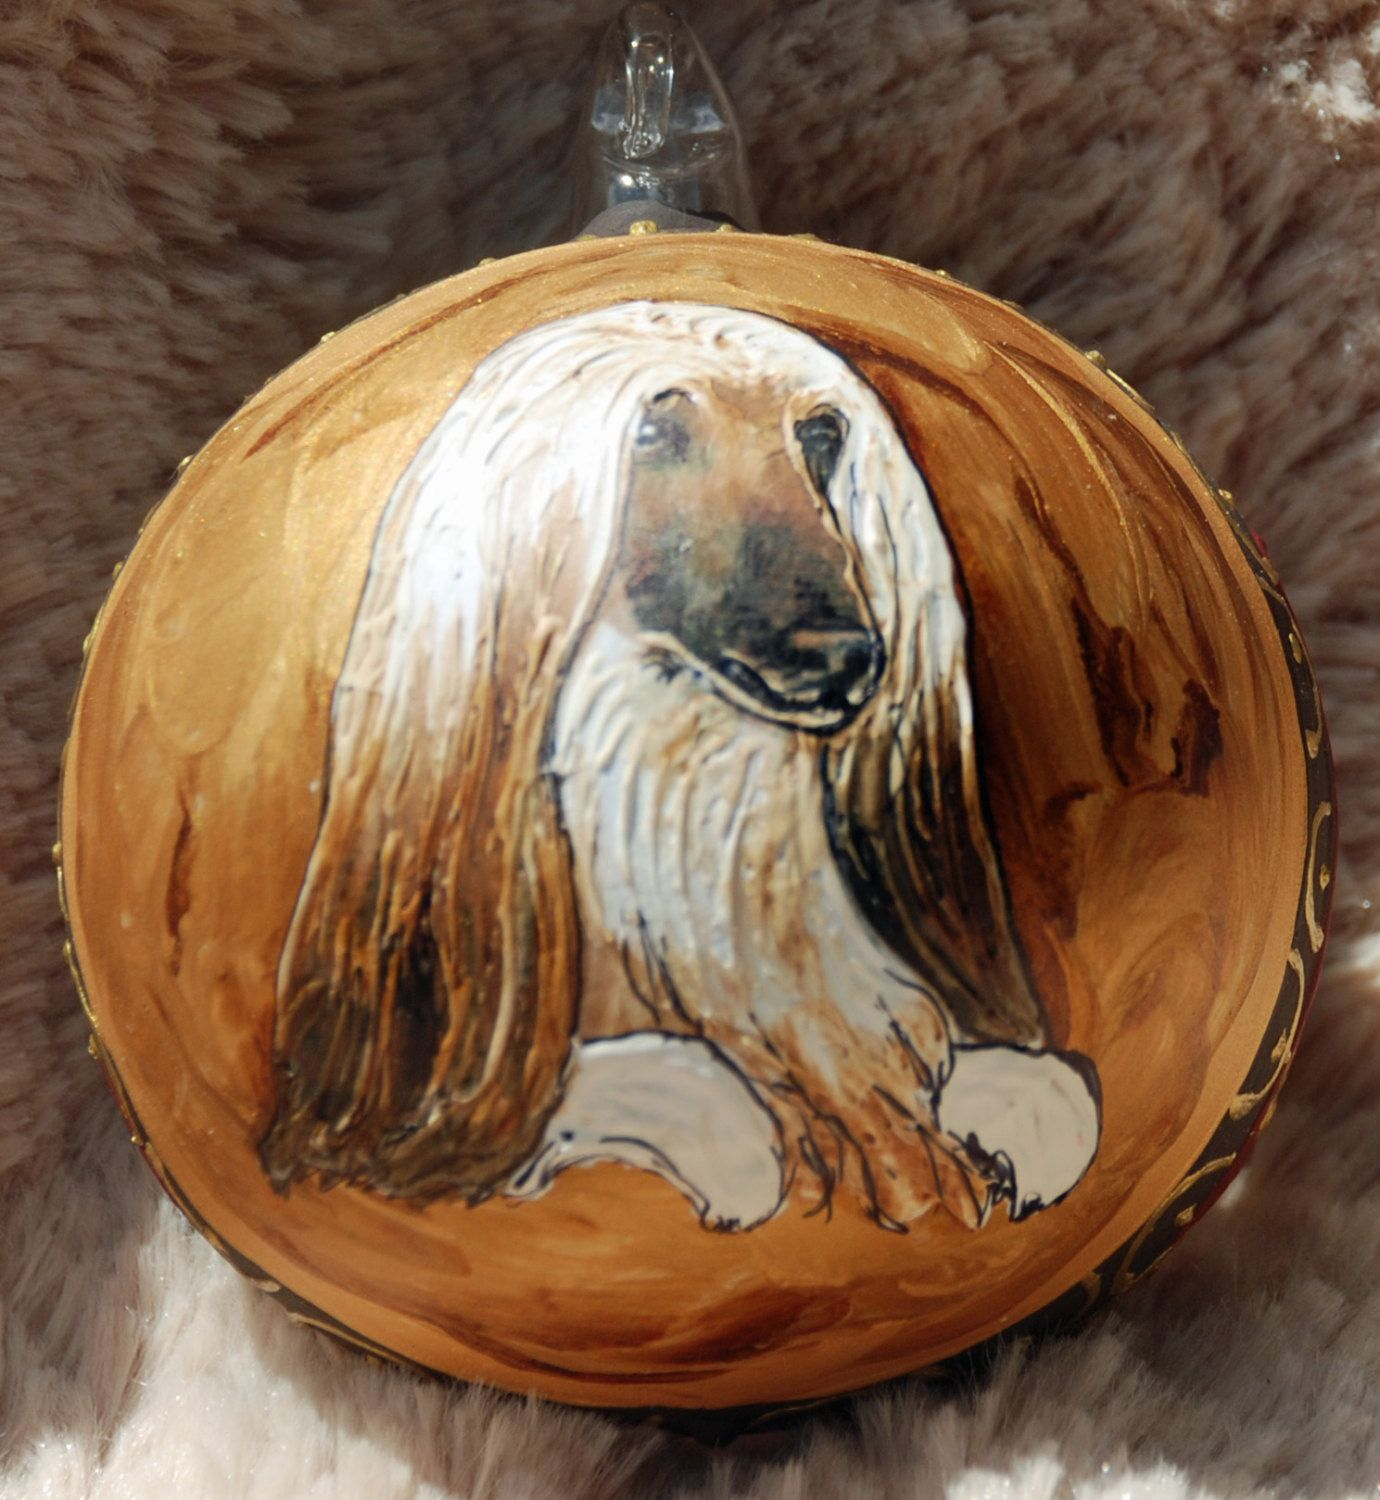 Afghan Hound Dog Handpainted Glass Ornament For The Dog Lover In